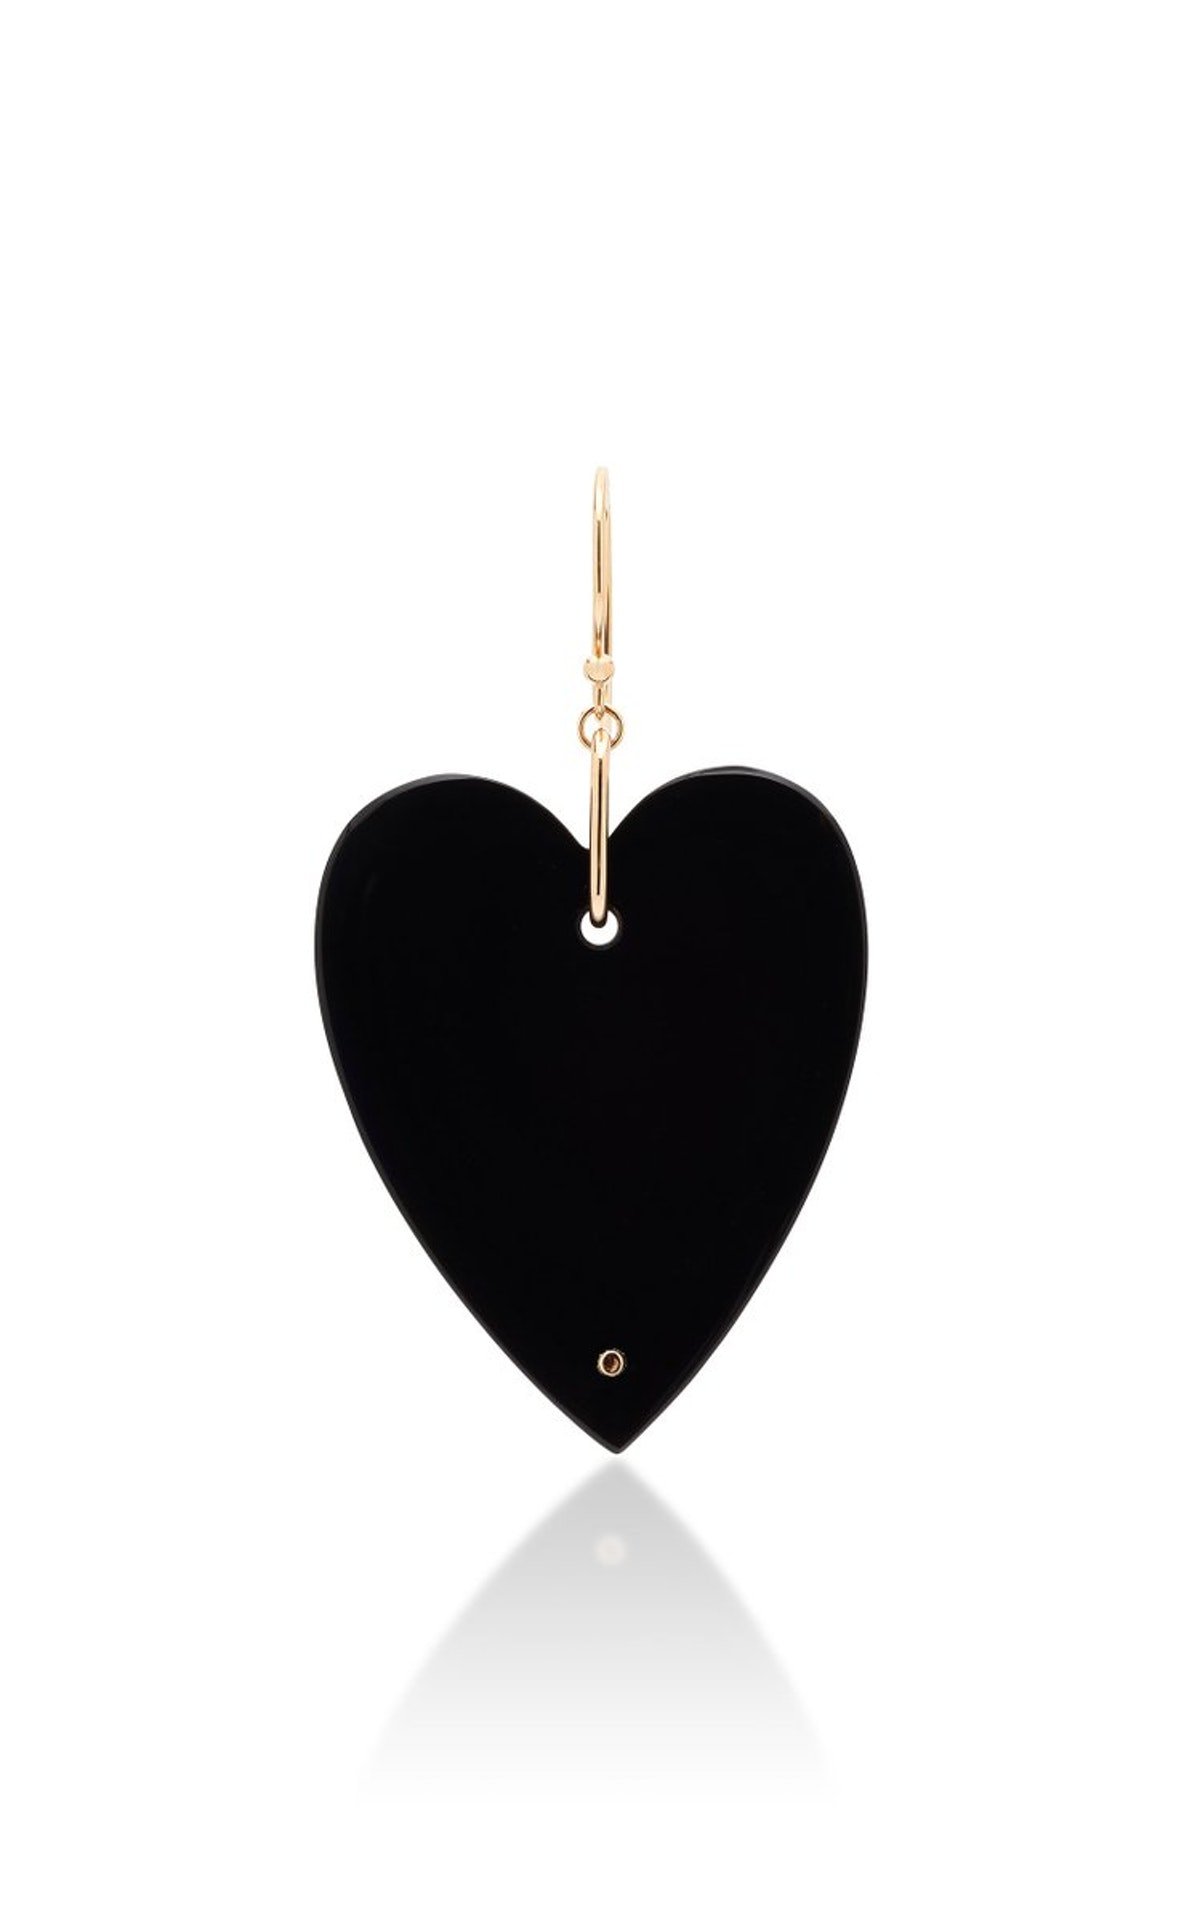 Solo Angèle 18K Rose Gold Onyx Single Earring from Ginette NY, available to shop on Moda Operandi.